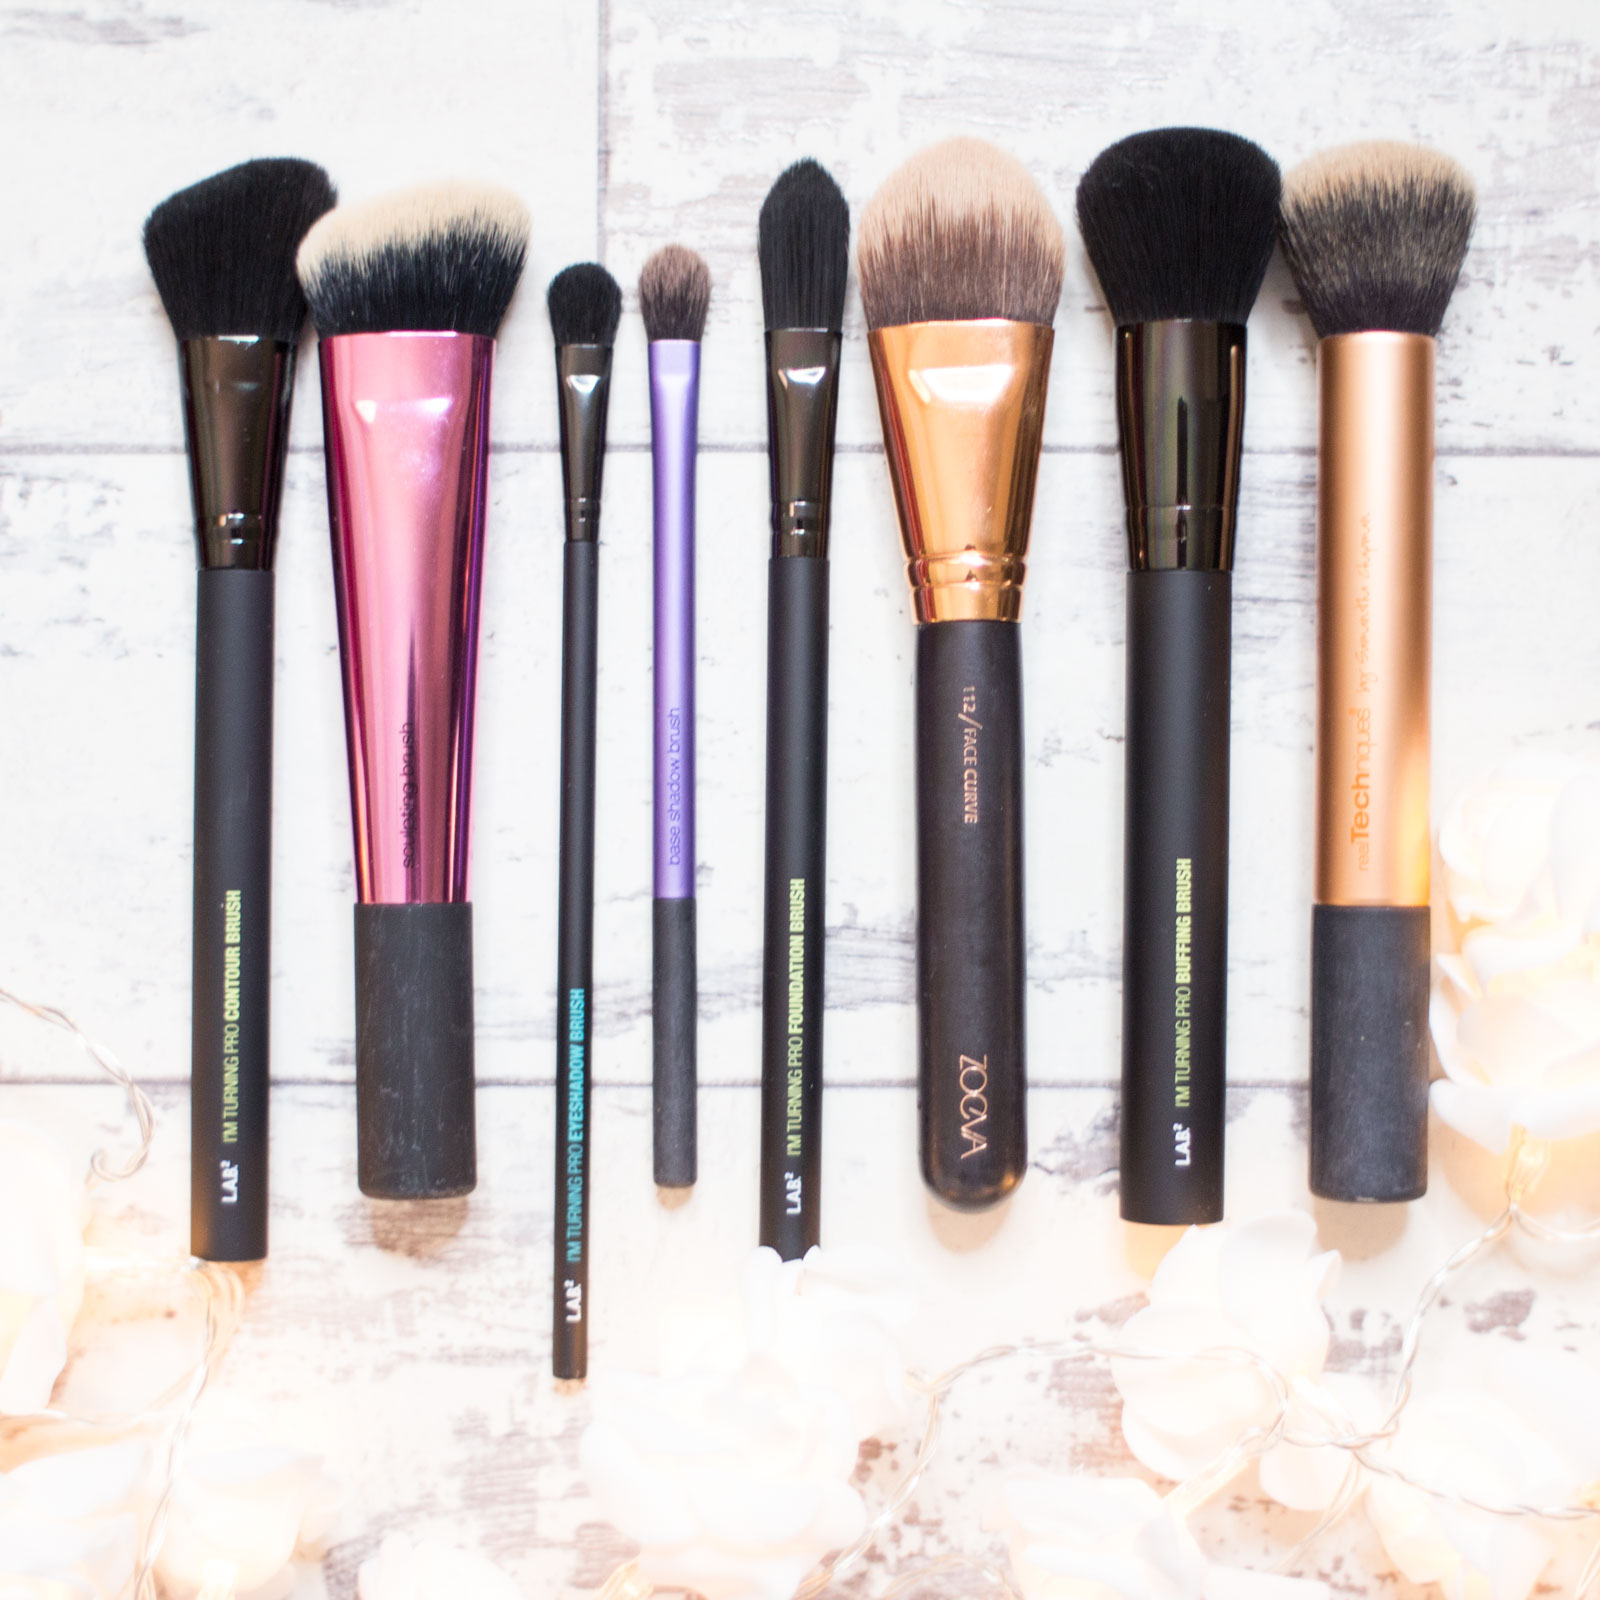 LAB2 Contour Brush vs Real Techniques Sculpting Brush, LAB2 Eyeshadow Brush vs Real Techniques Base Shadow Brush, LAB2 Foundation Brush vs Zoeva 112 Brush, LAB2 Buffing Brush vs Real Techniques Buffing Brush